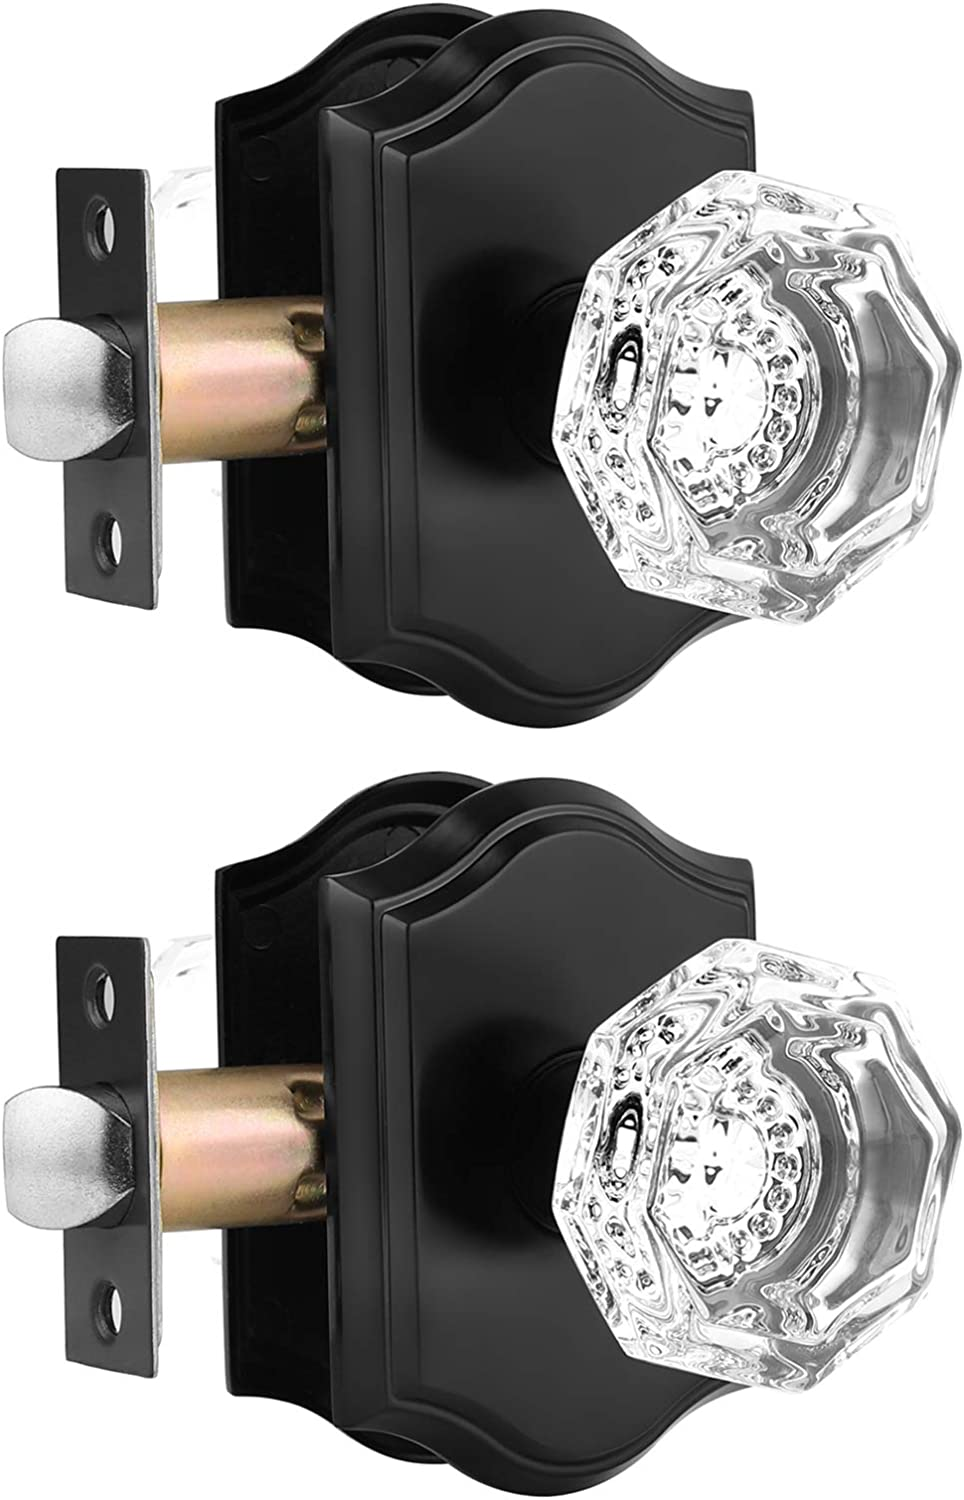 Clear Crystal Door Knobs with Octagon Diamond,Glass Passage Knobs for Hallway Closet,Vintage Classic Interior Door Handles Pulls Non-Locking,Matte Black Finished,1Pack